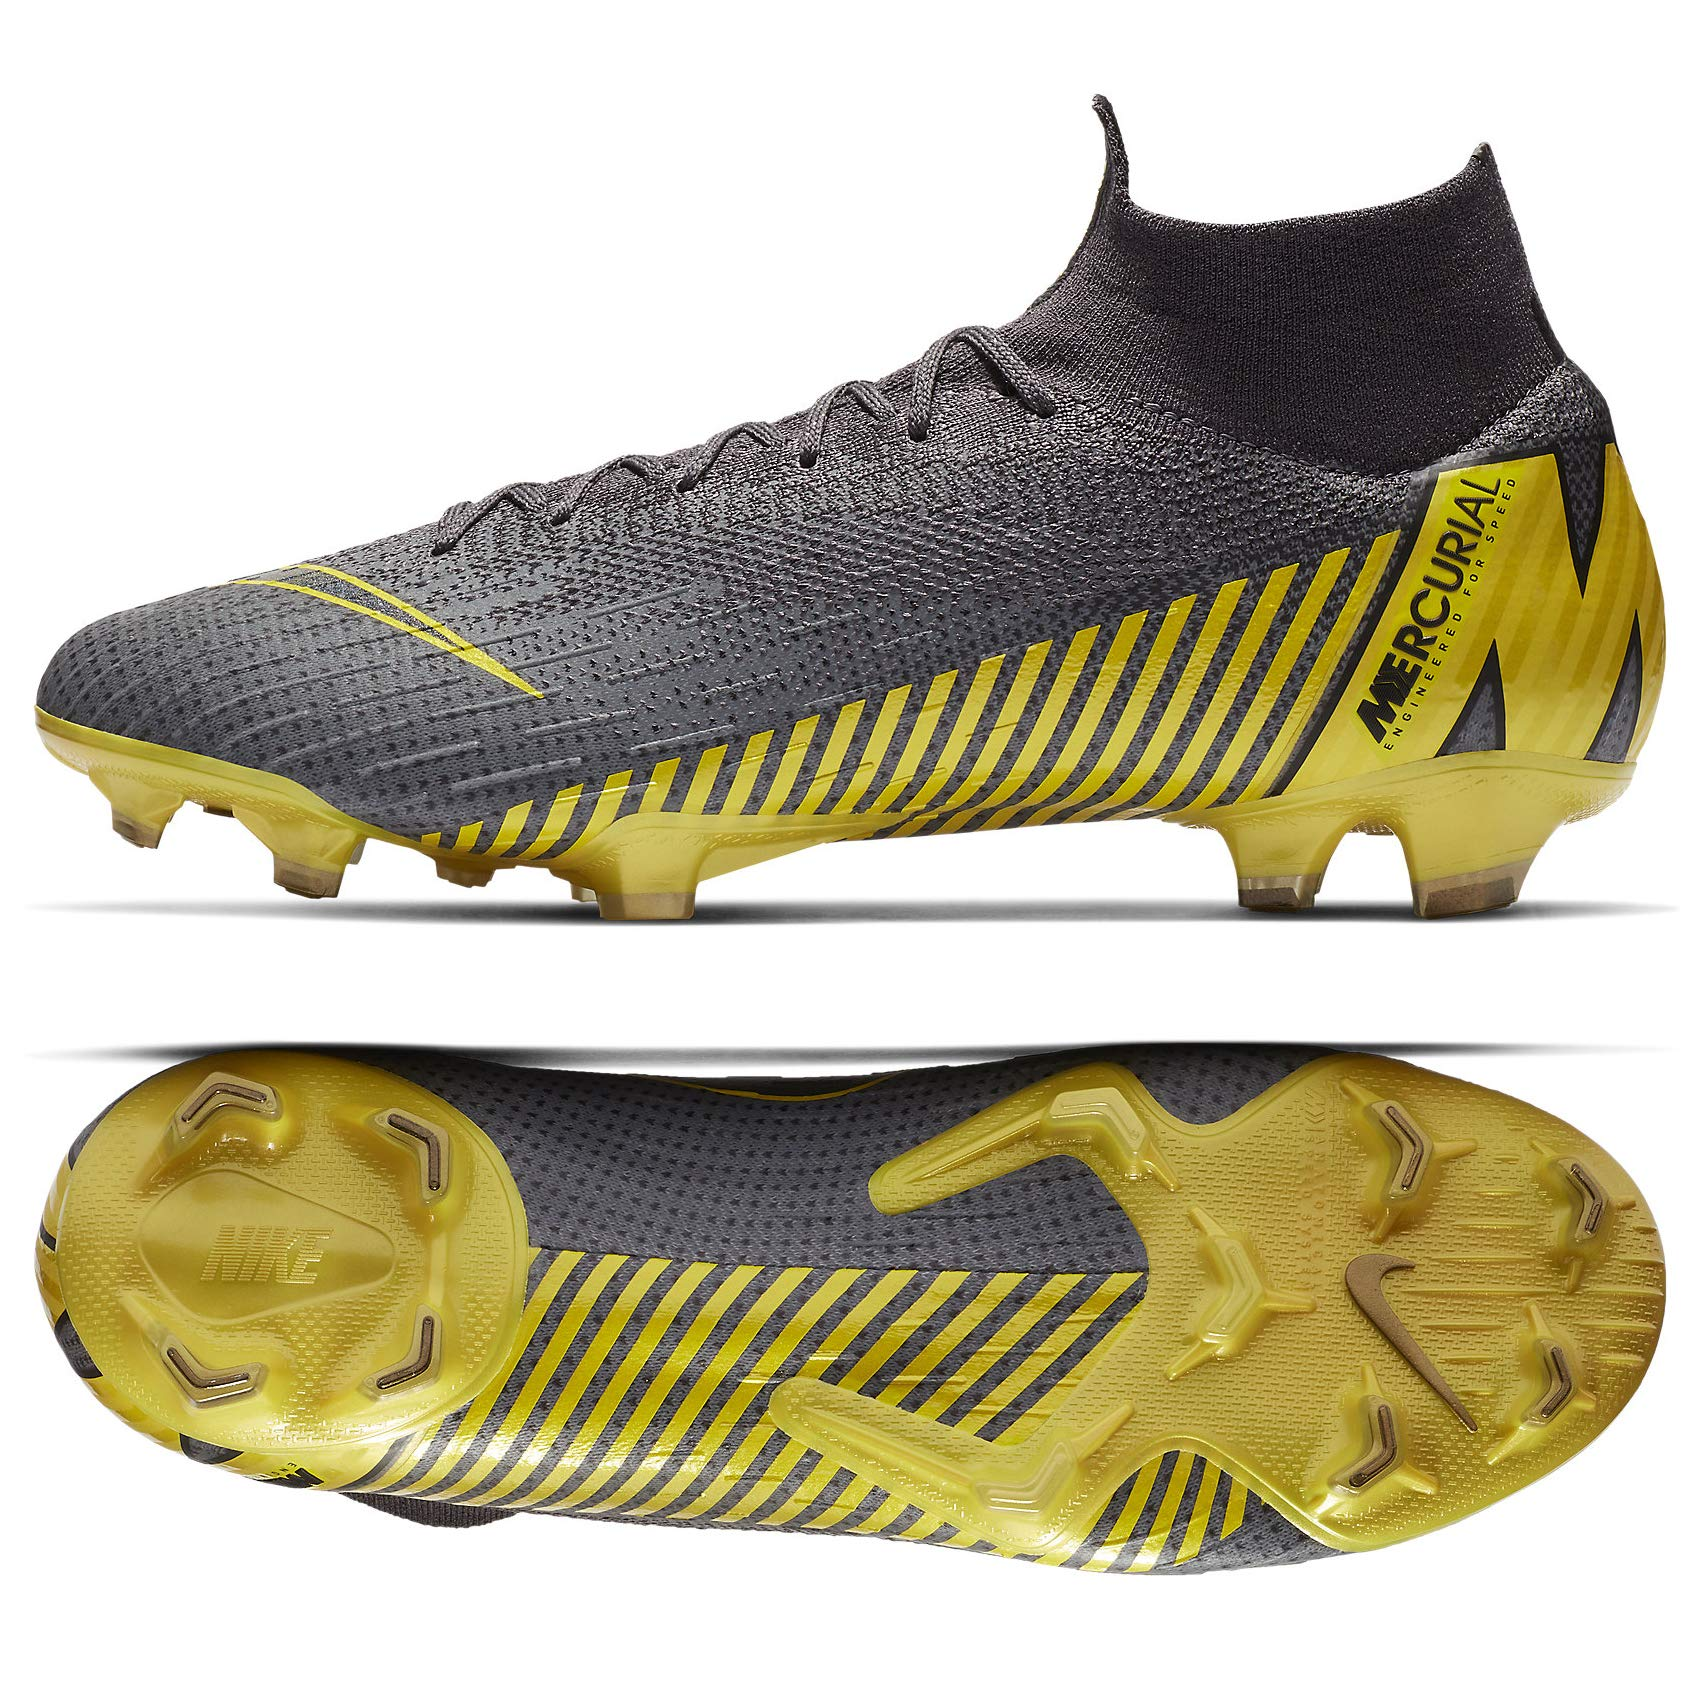 Nike Unisex Adults Mercurial Superfly 6 Elite FG Soccer Cleats Grey Yellow AH7365 070 (10)